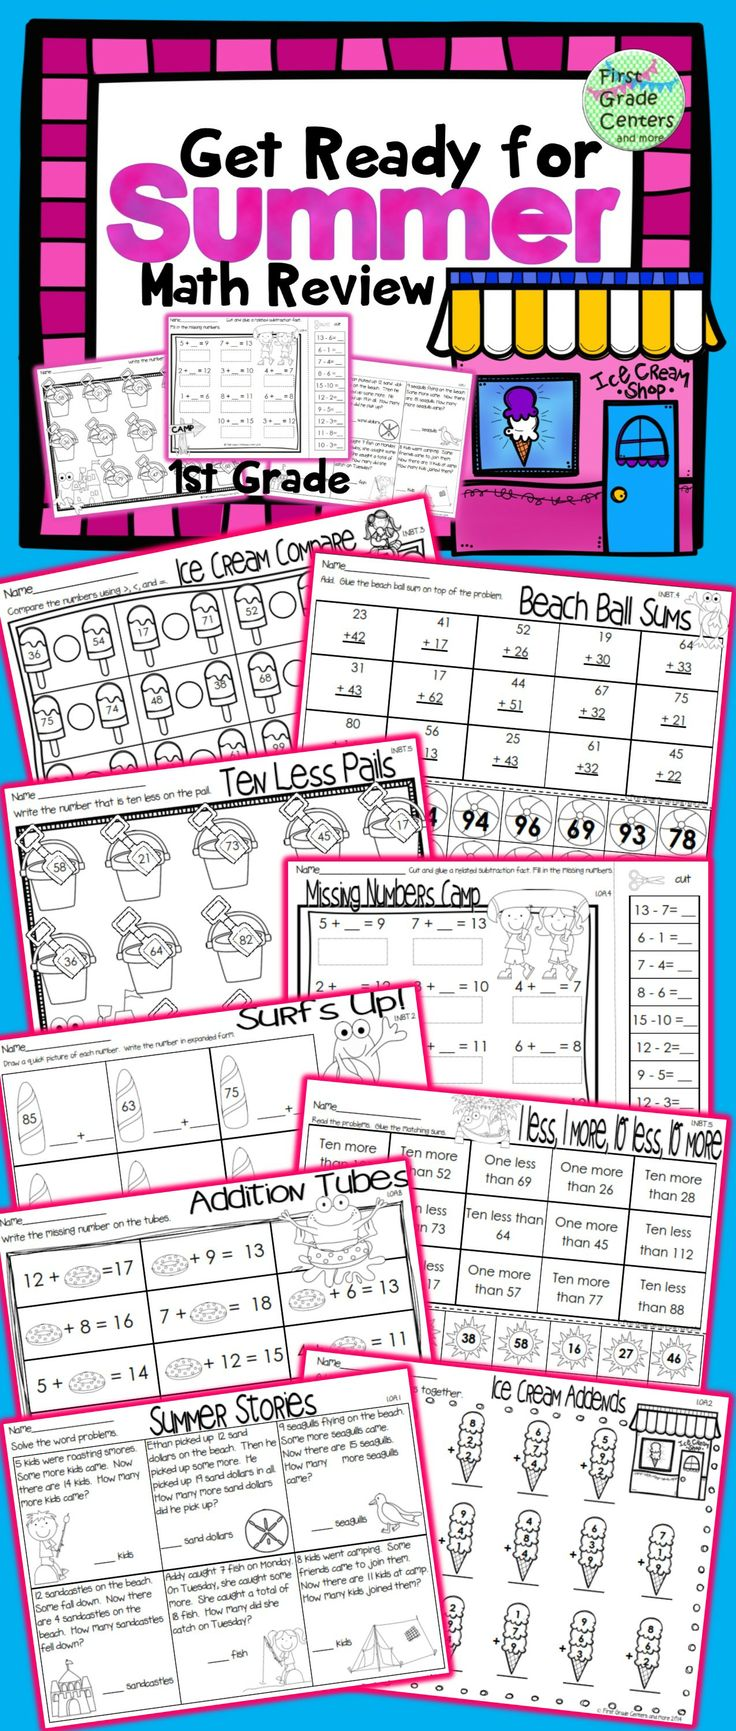 Worksheet 1st Grade Math Review 1000 images about math activitiesresources on pinterest fact 19 common core aligned end of yearsummer 1st grade review